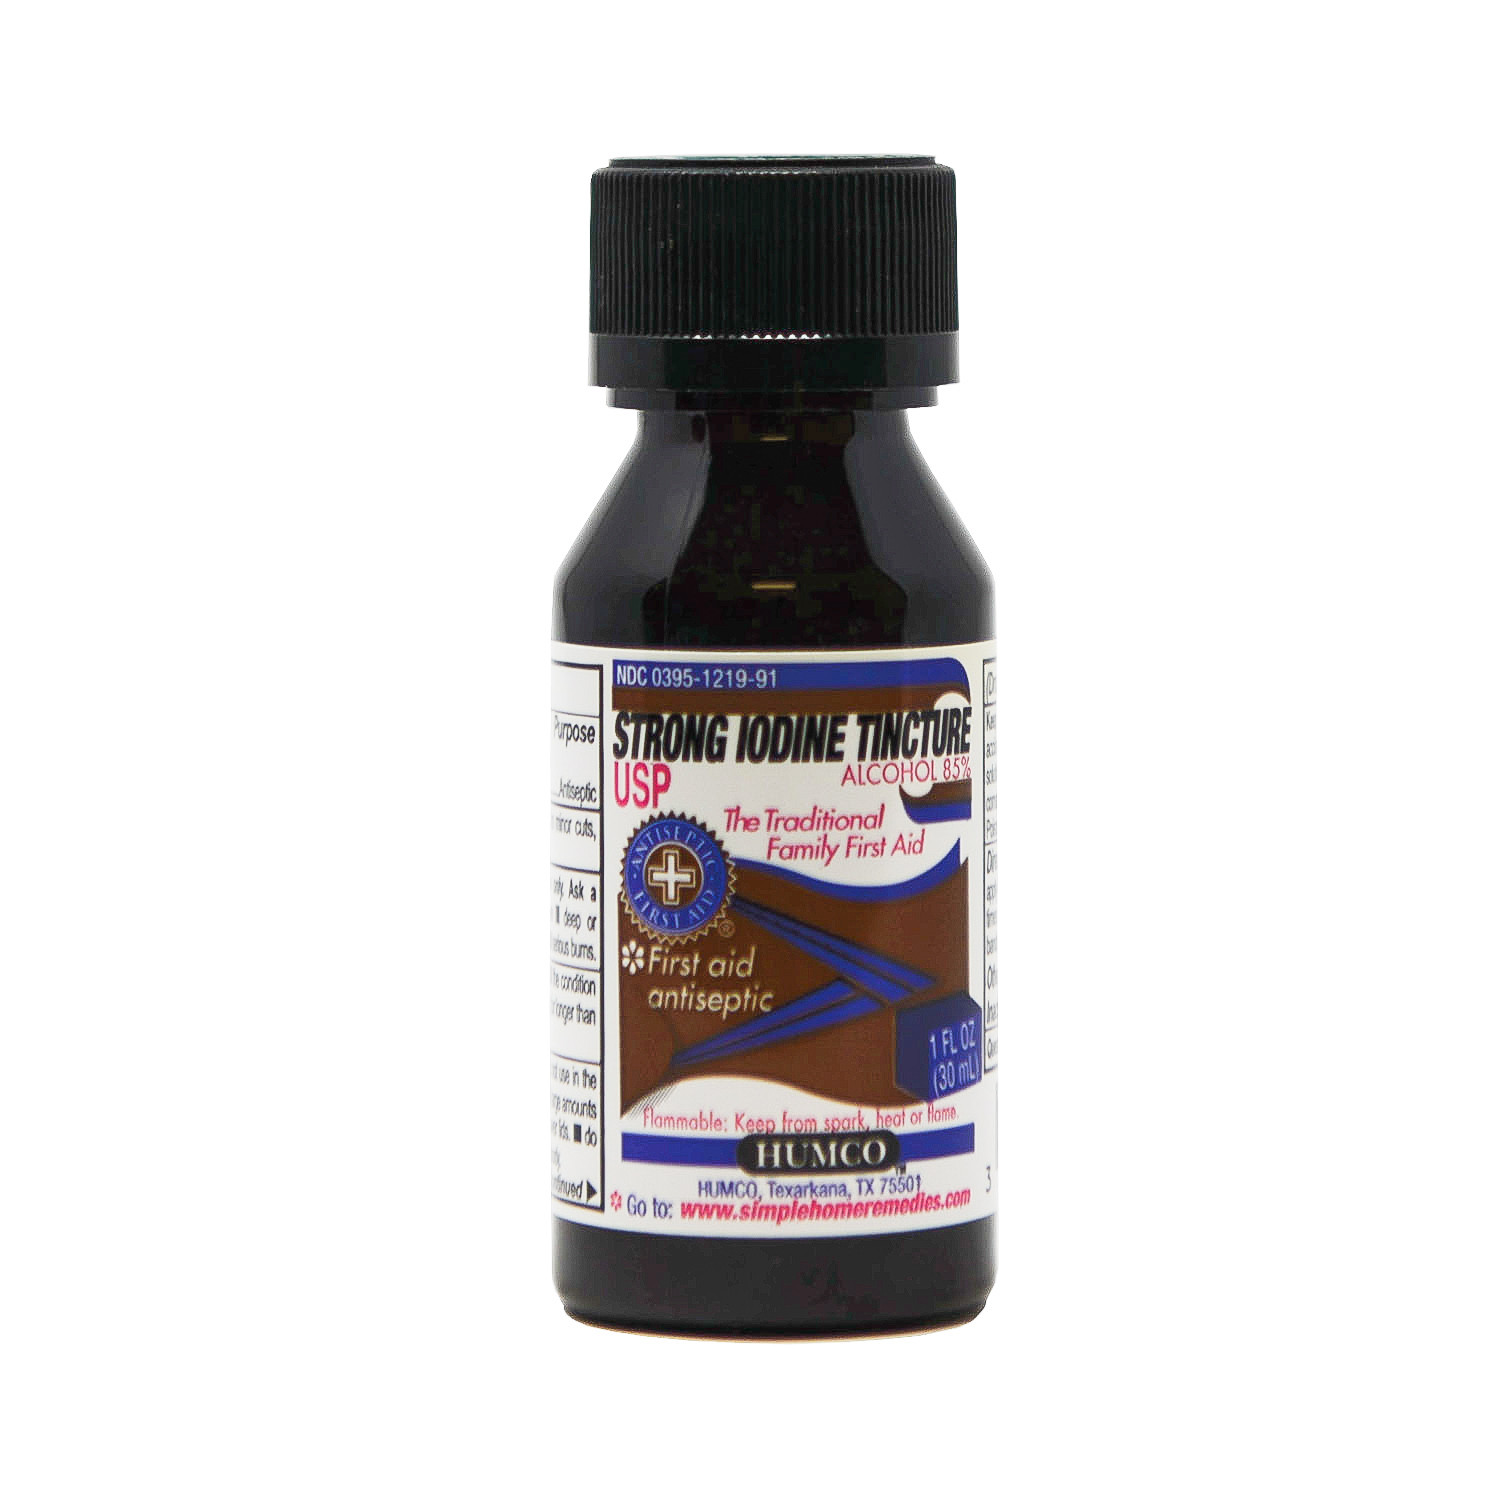 Iodine Tincture Strong 7%, USP